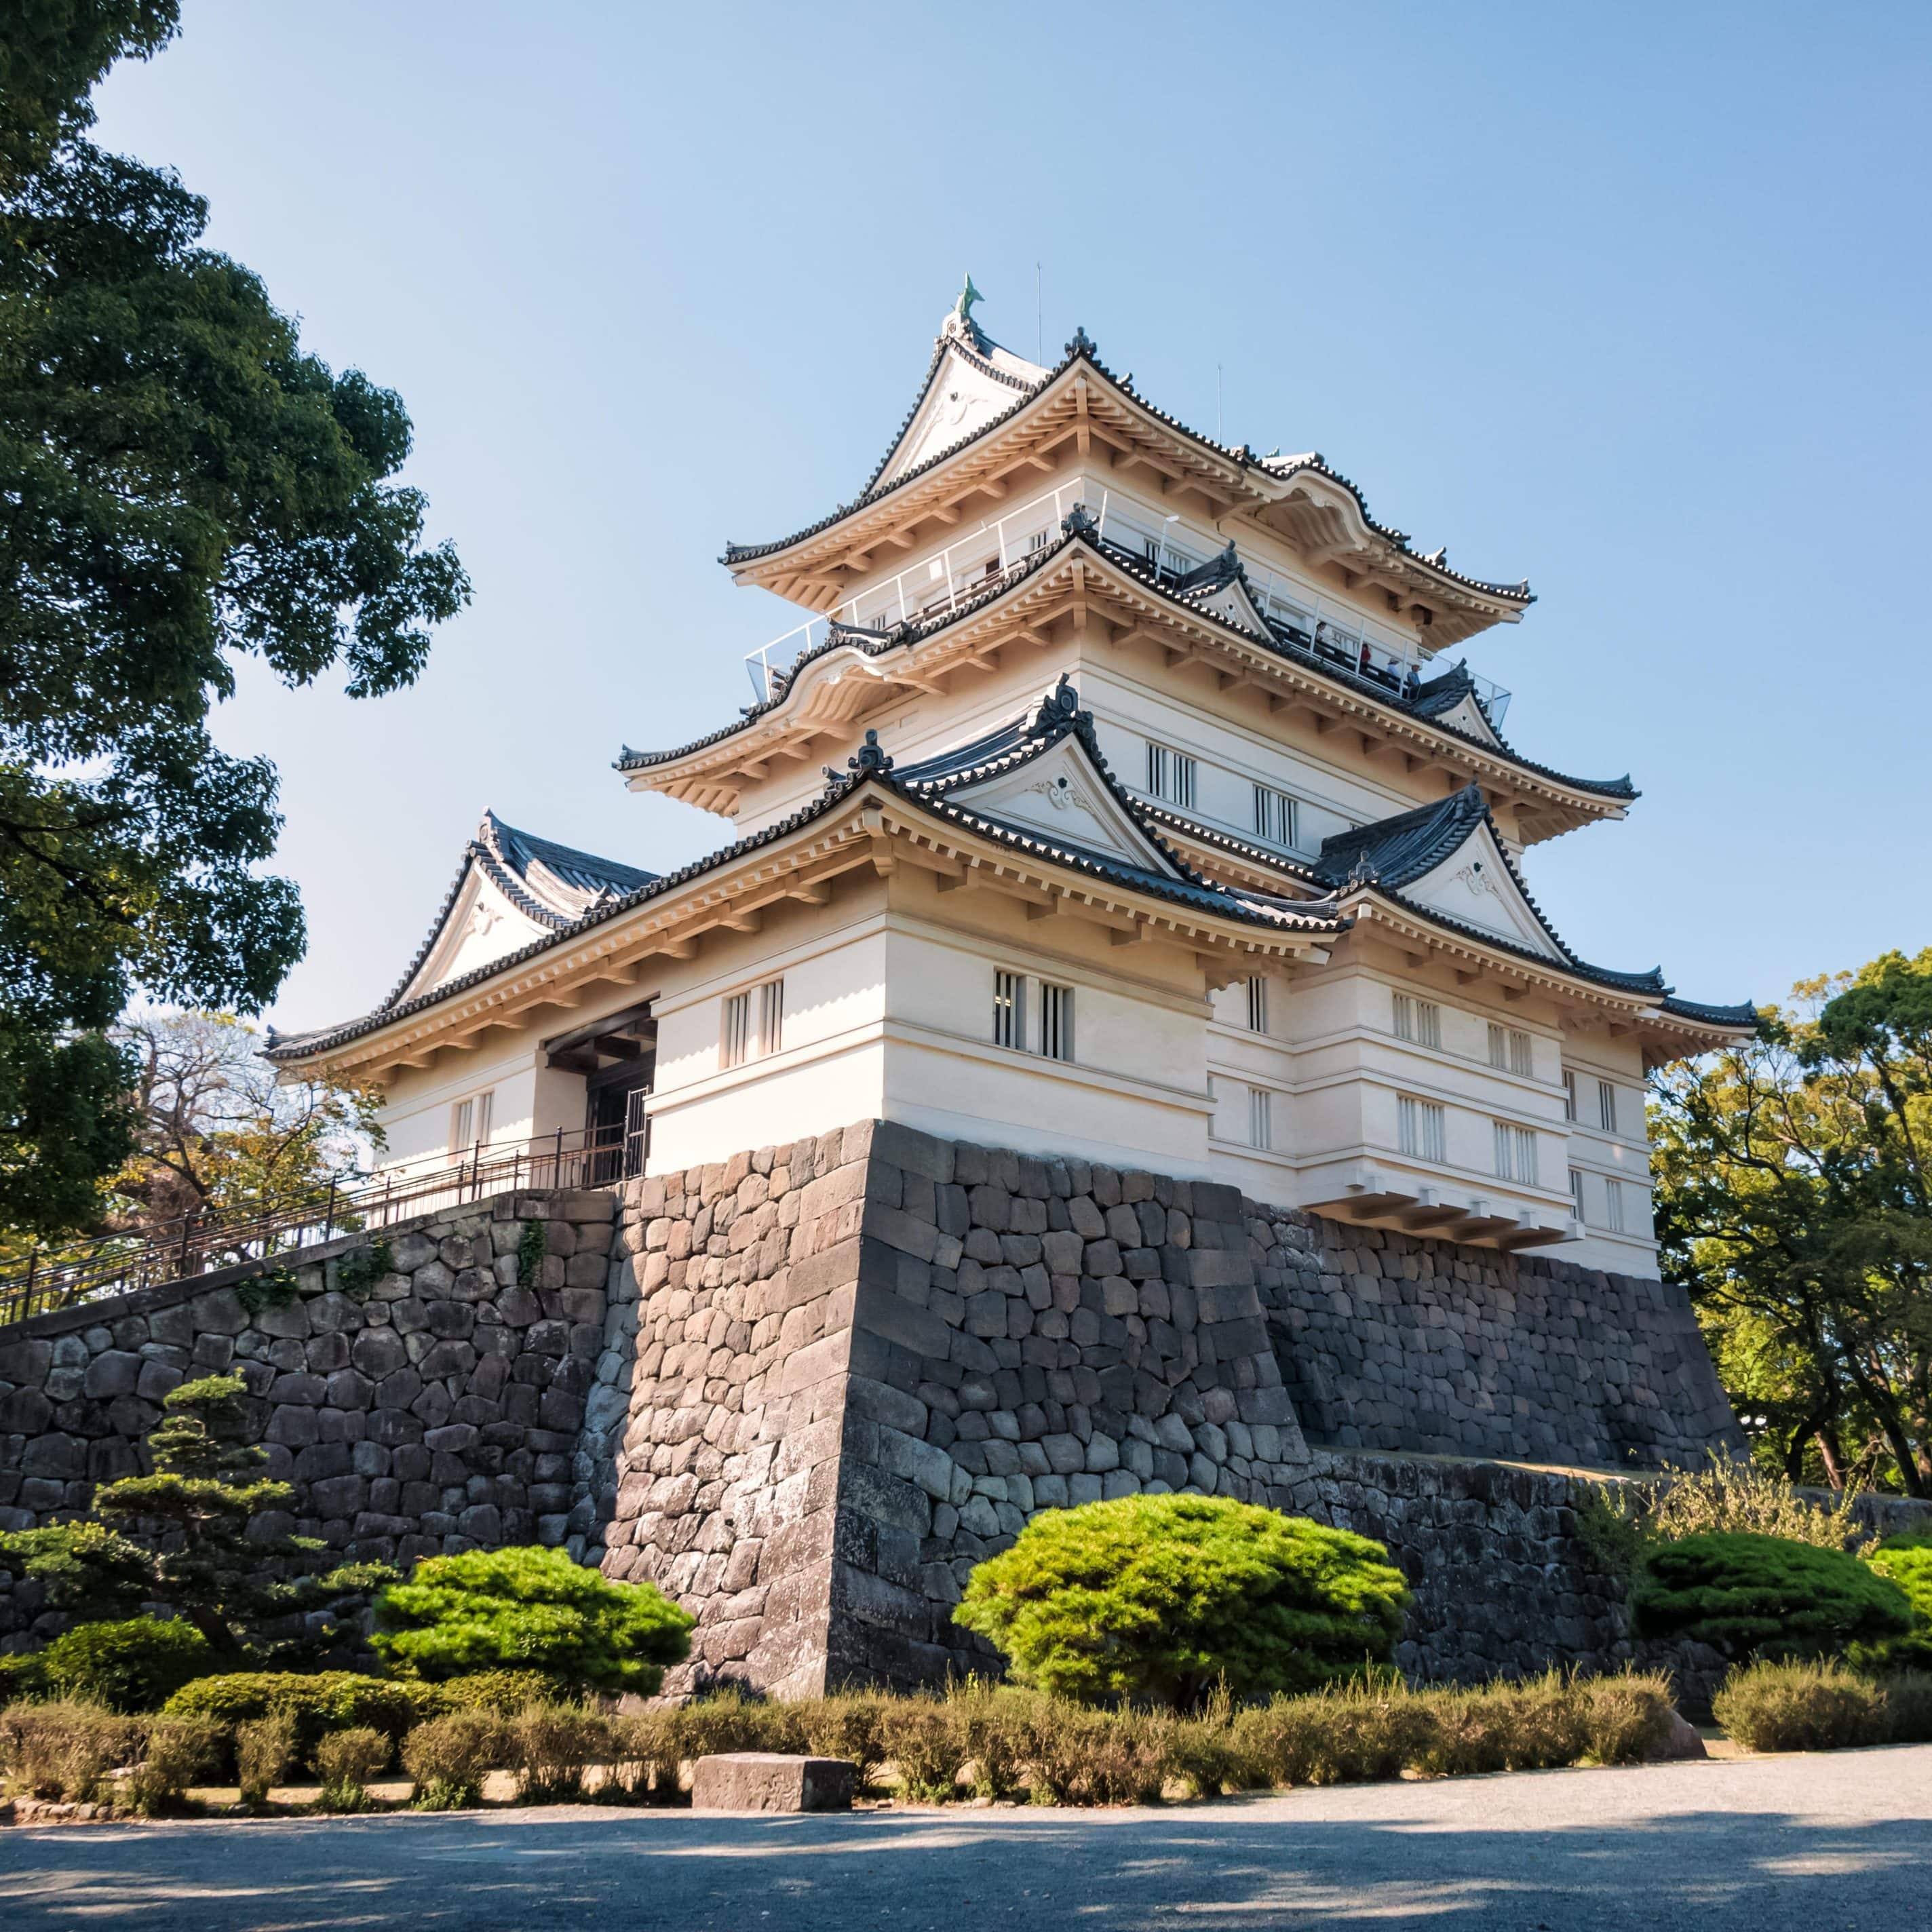 Odawara Castle, which is on the bullet train line